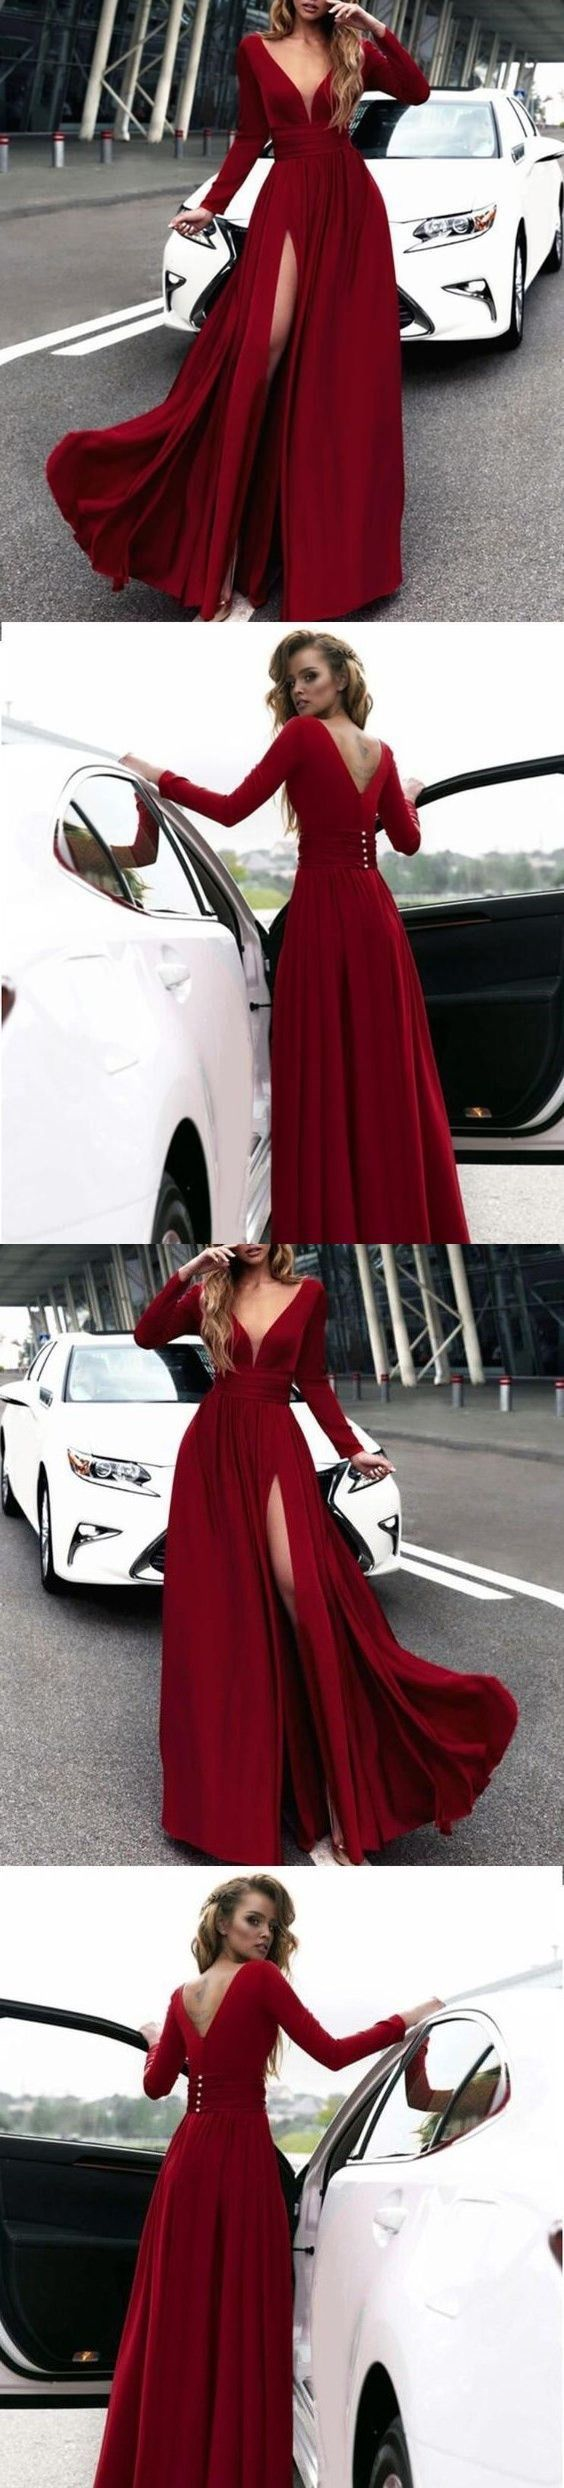 Long Sleeves Formal Evening Gown Wine Red,V Neck Prom Dress With High Slit G225… - https://sorihe.com/adidas/2018/03/08/long-sleeves-formal-evening-gown-wine-redv-neck-prom-dress-with-high-slit-g225/